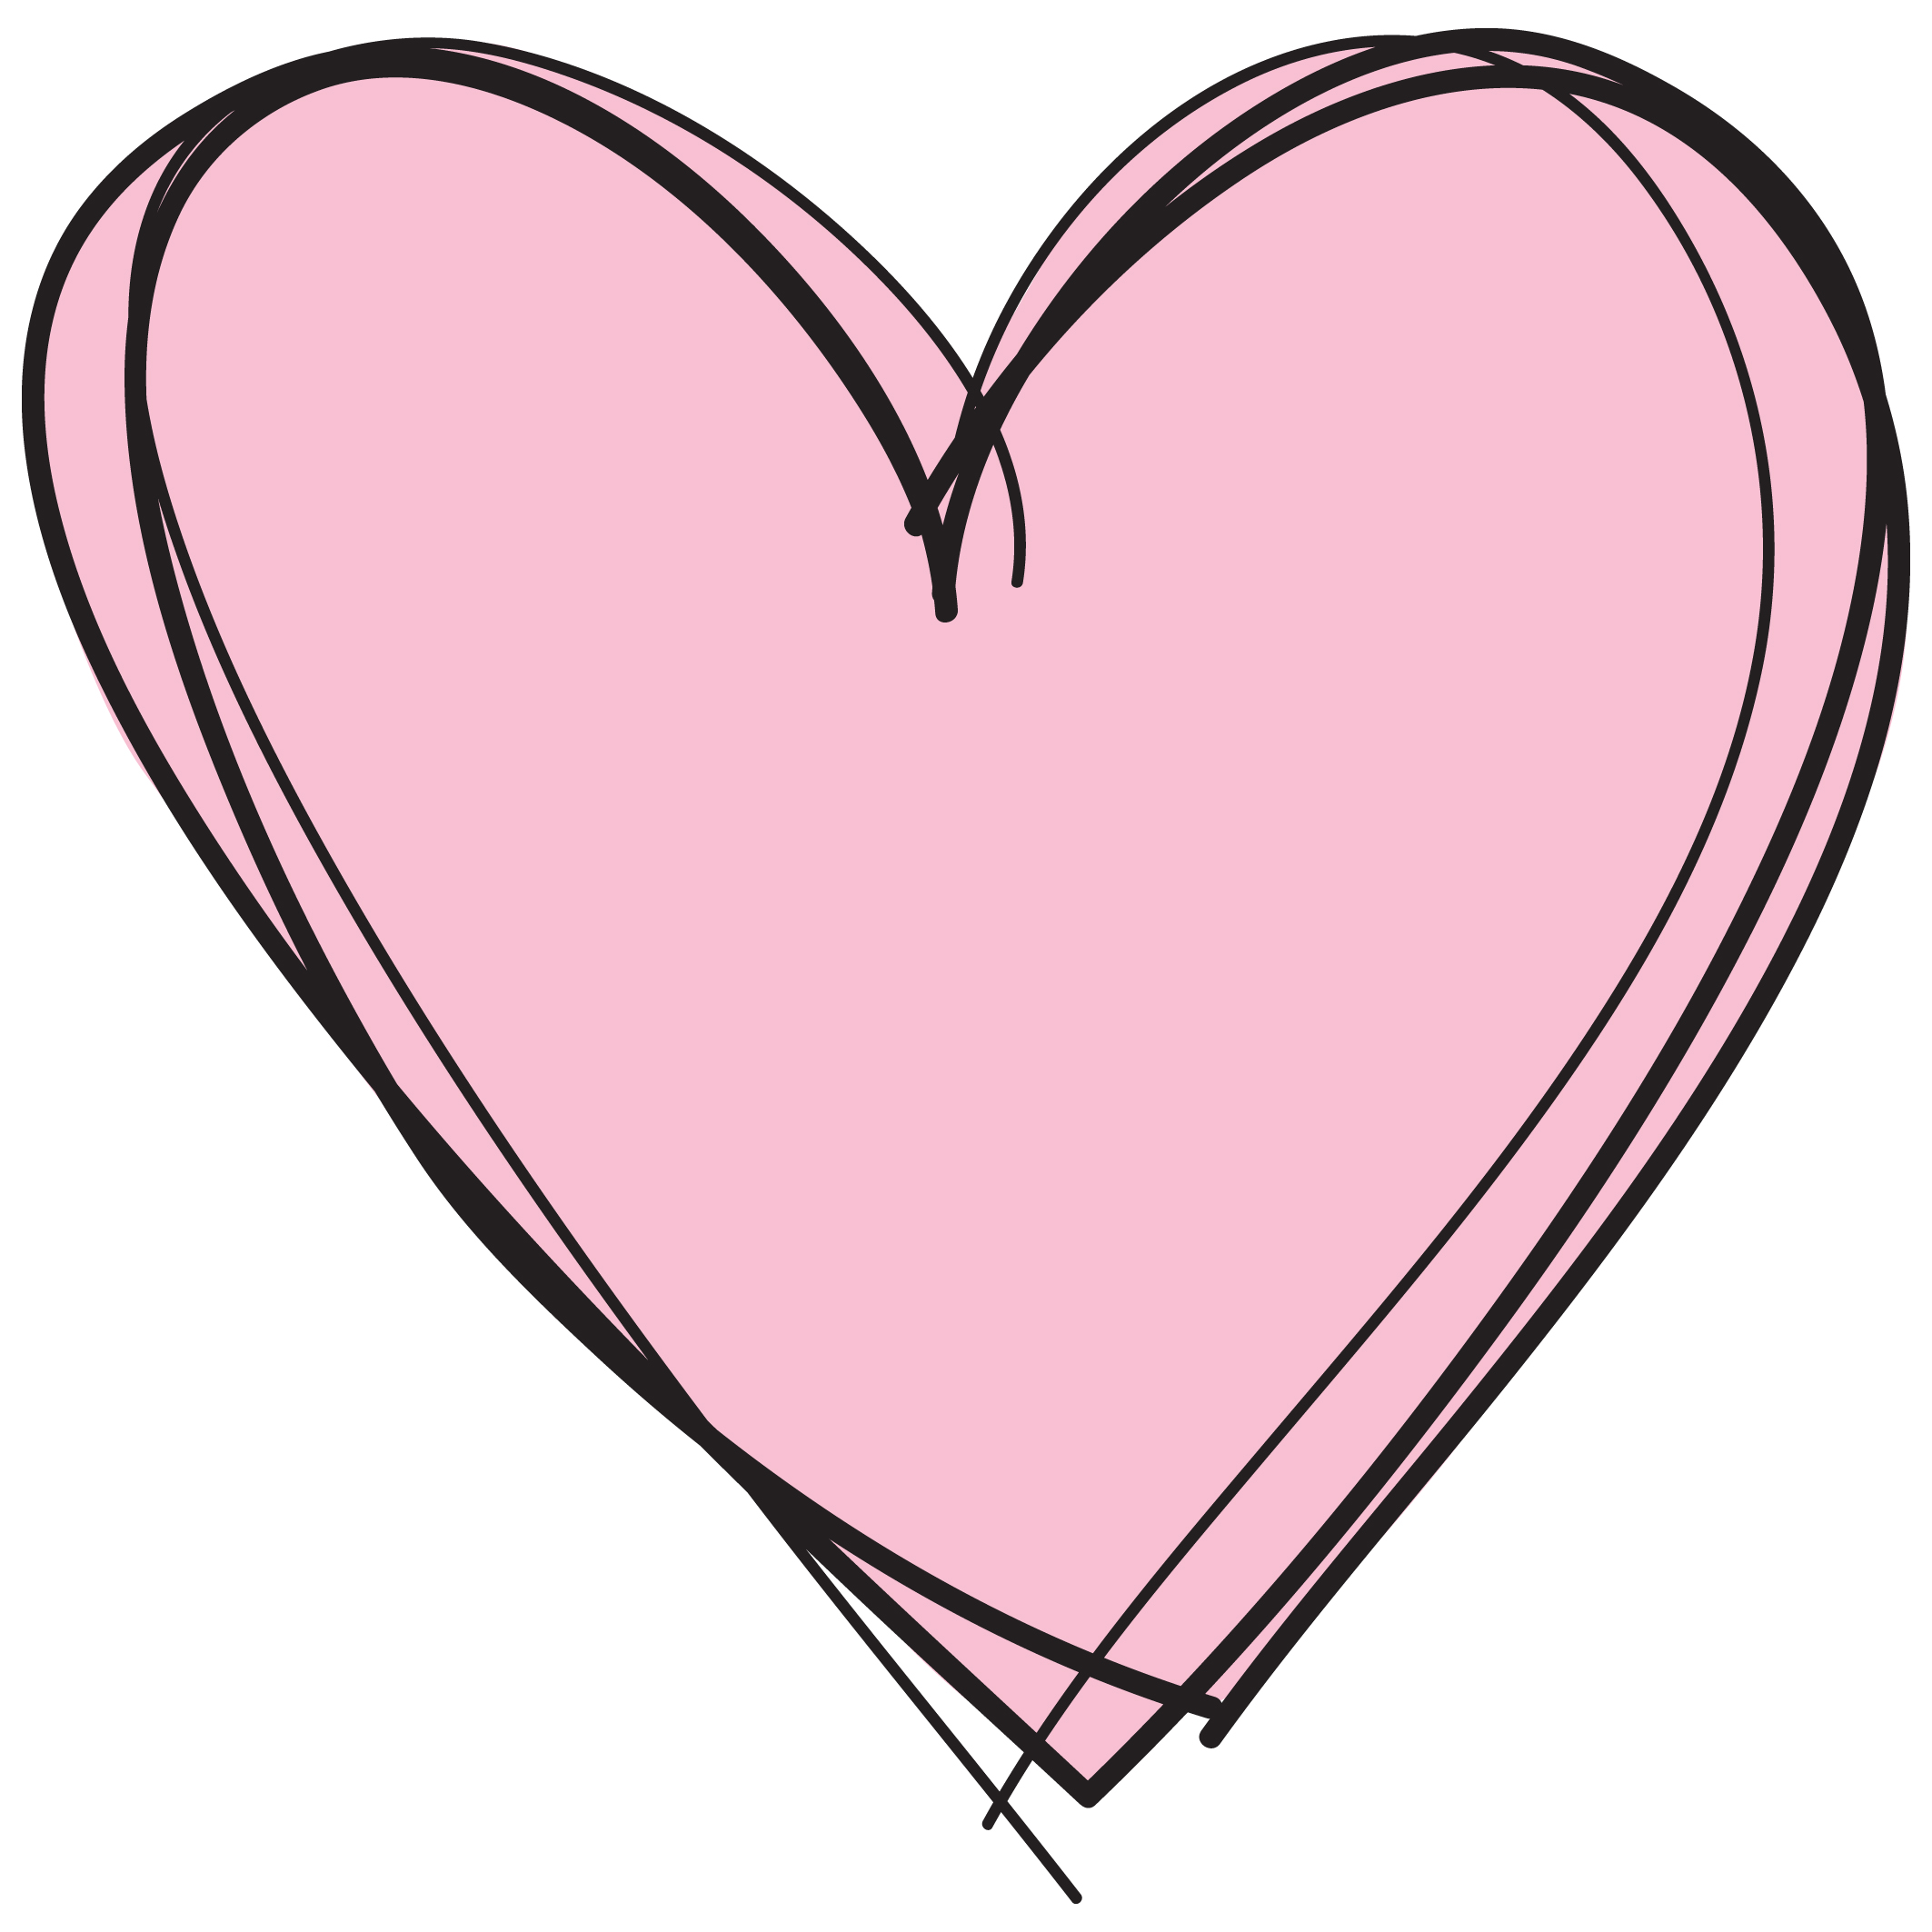 Hearts clipart transparent background Free collection background with art